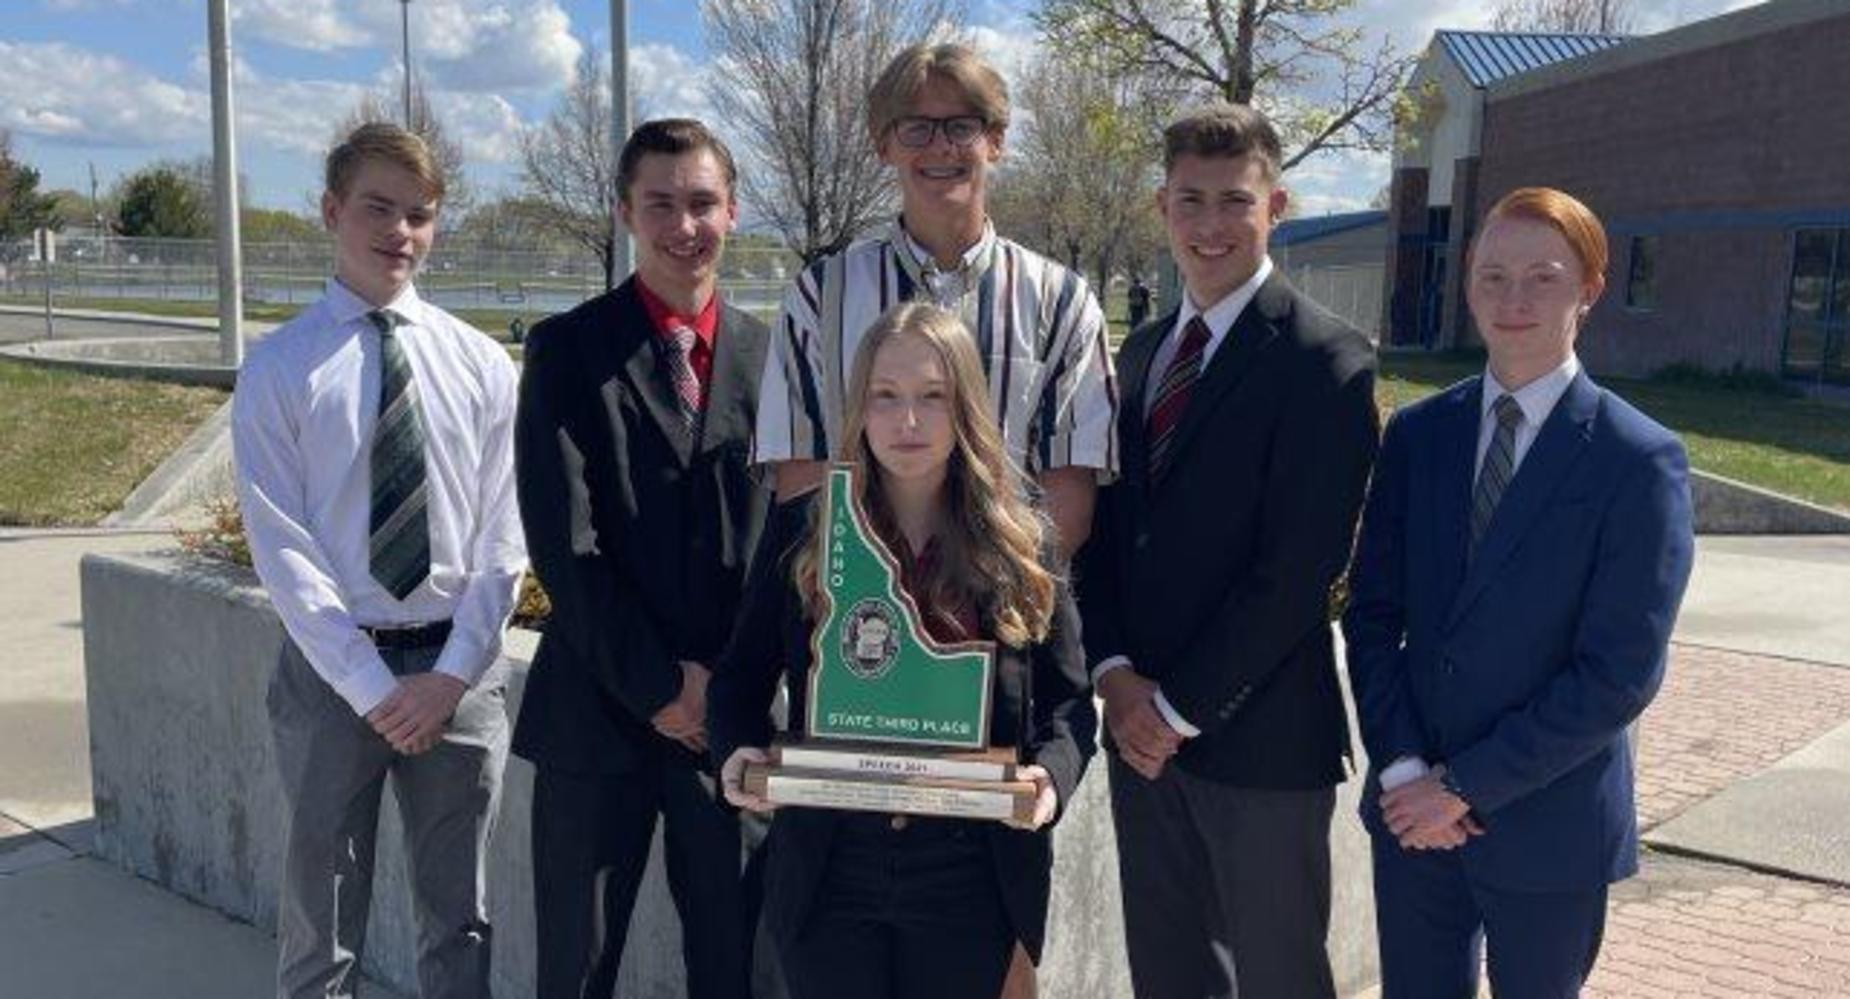 Skyview took 3rd at State Speech